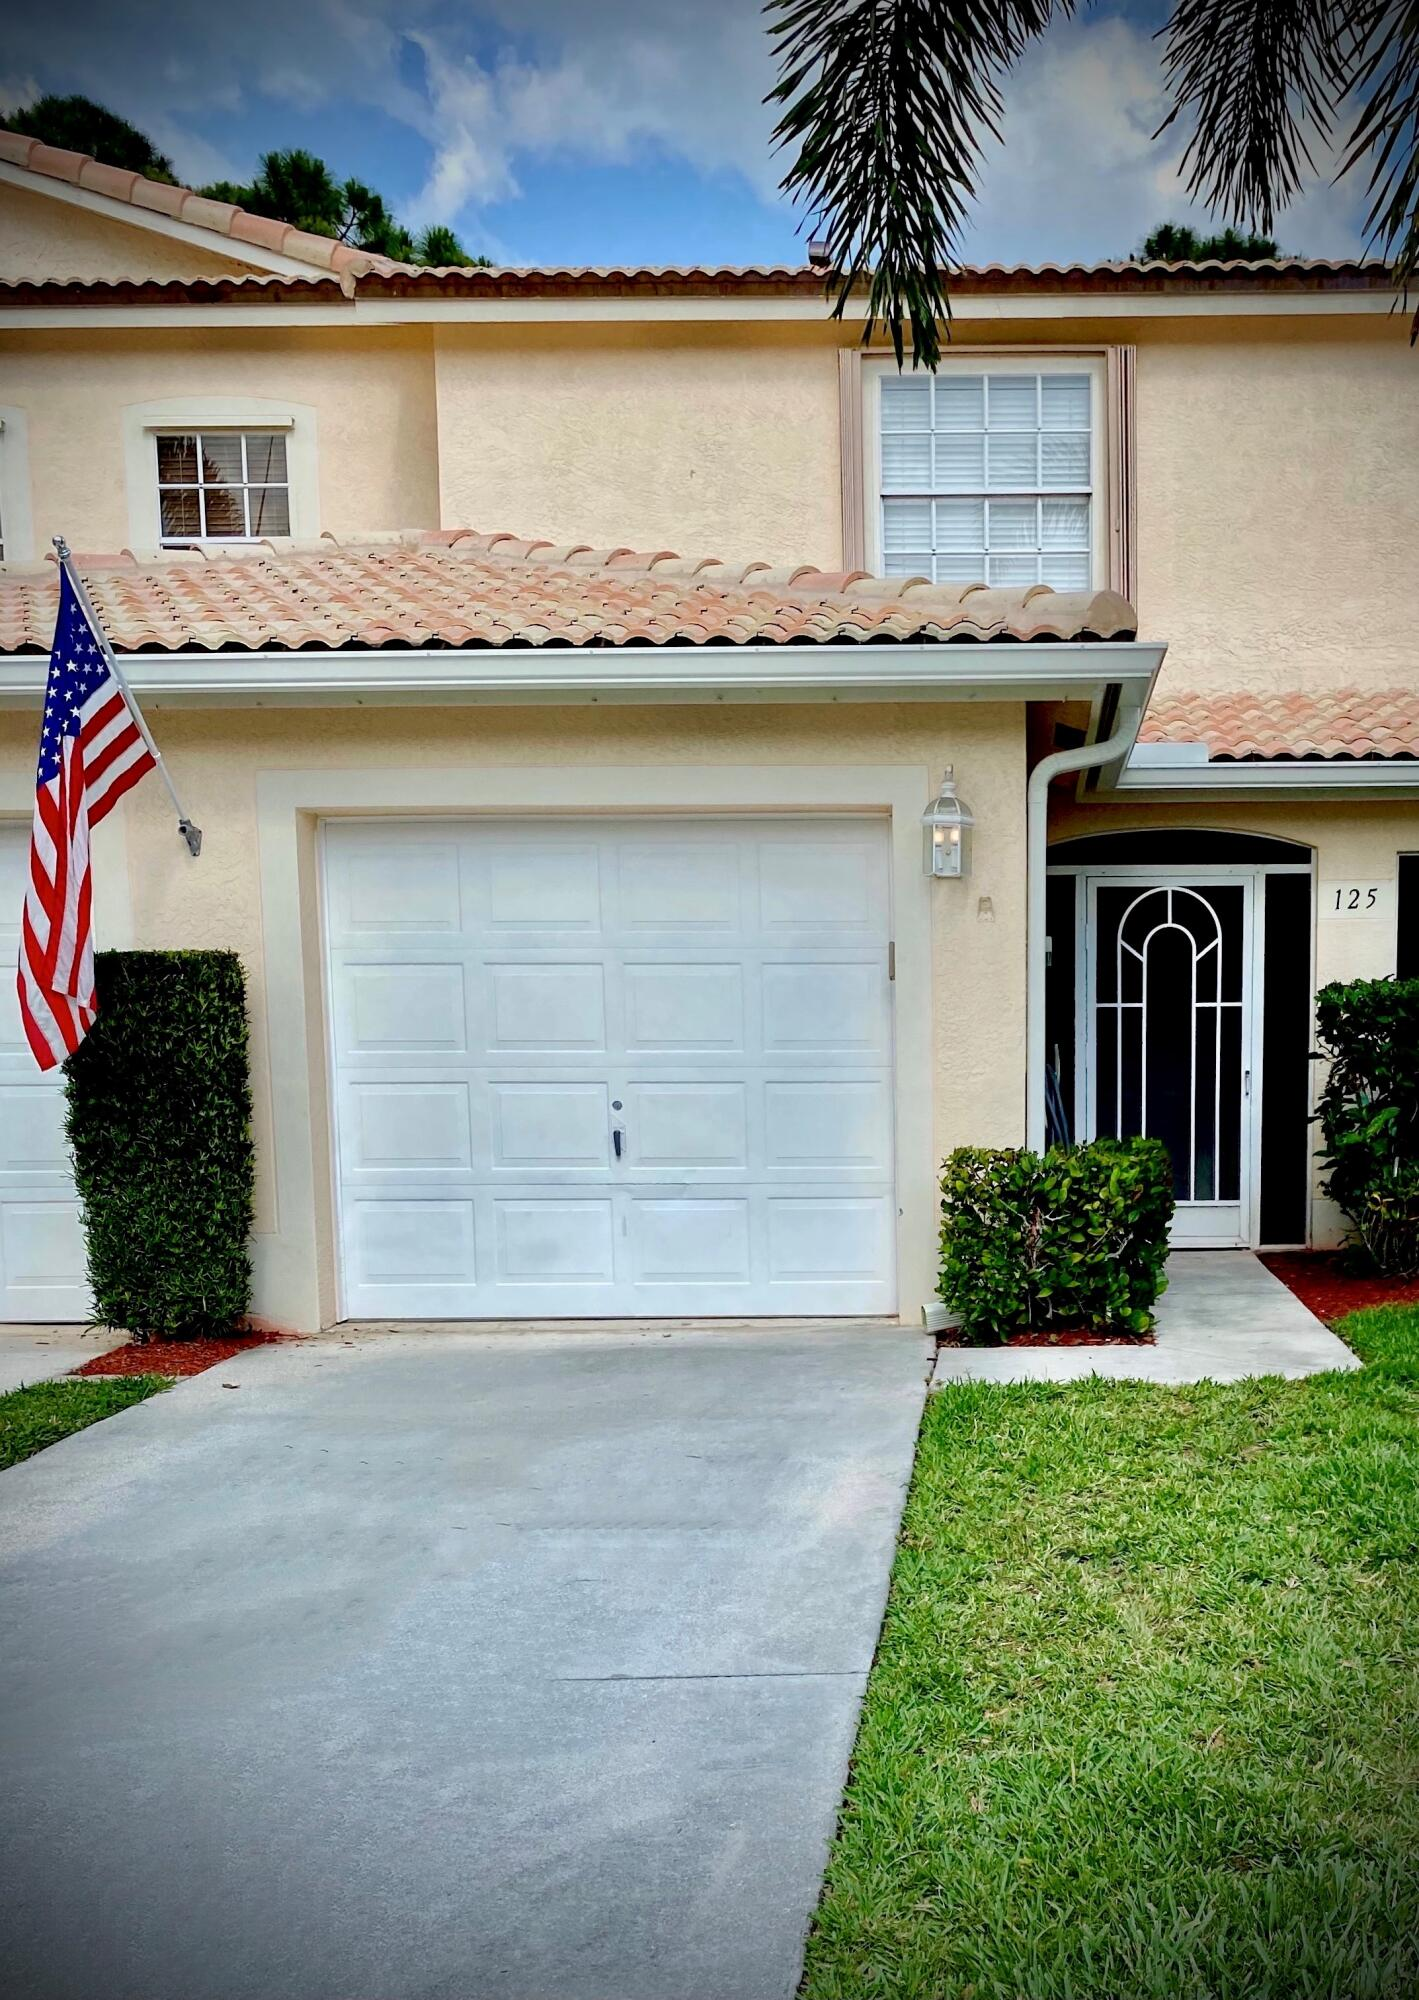 125 Wooden Mill Terrace, Jupiter FL 33458